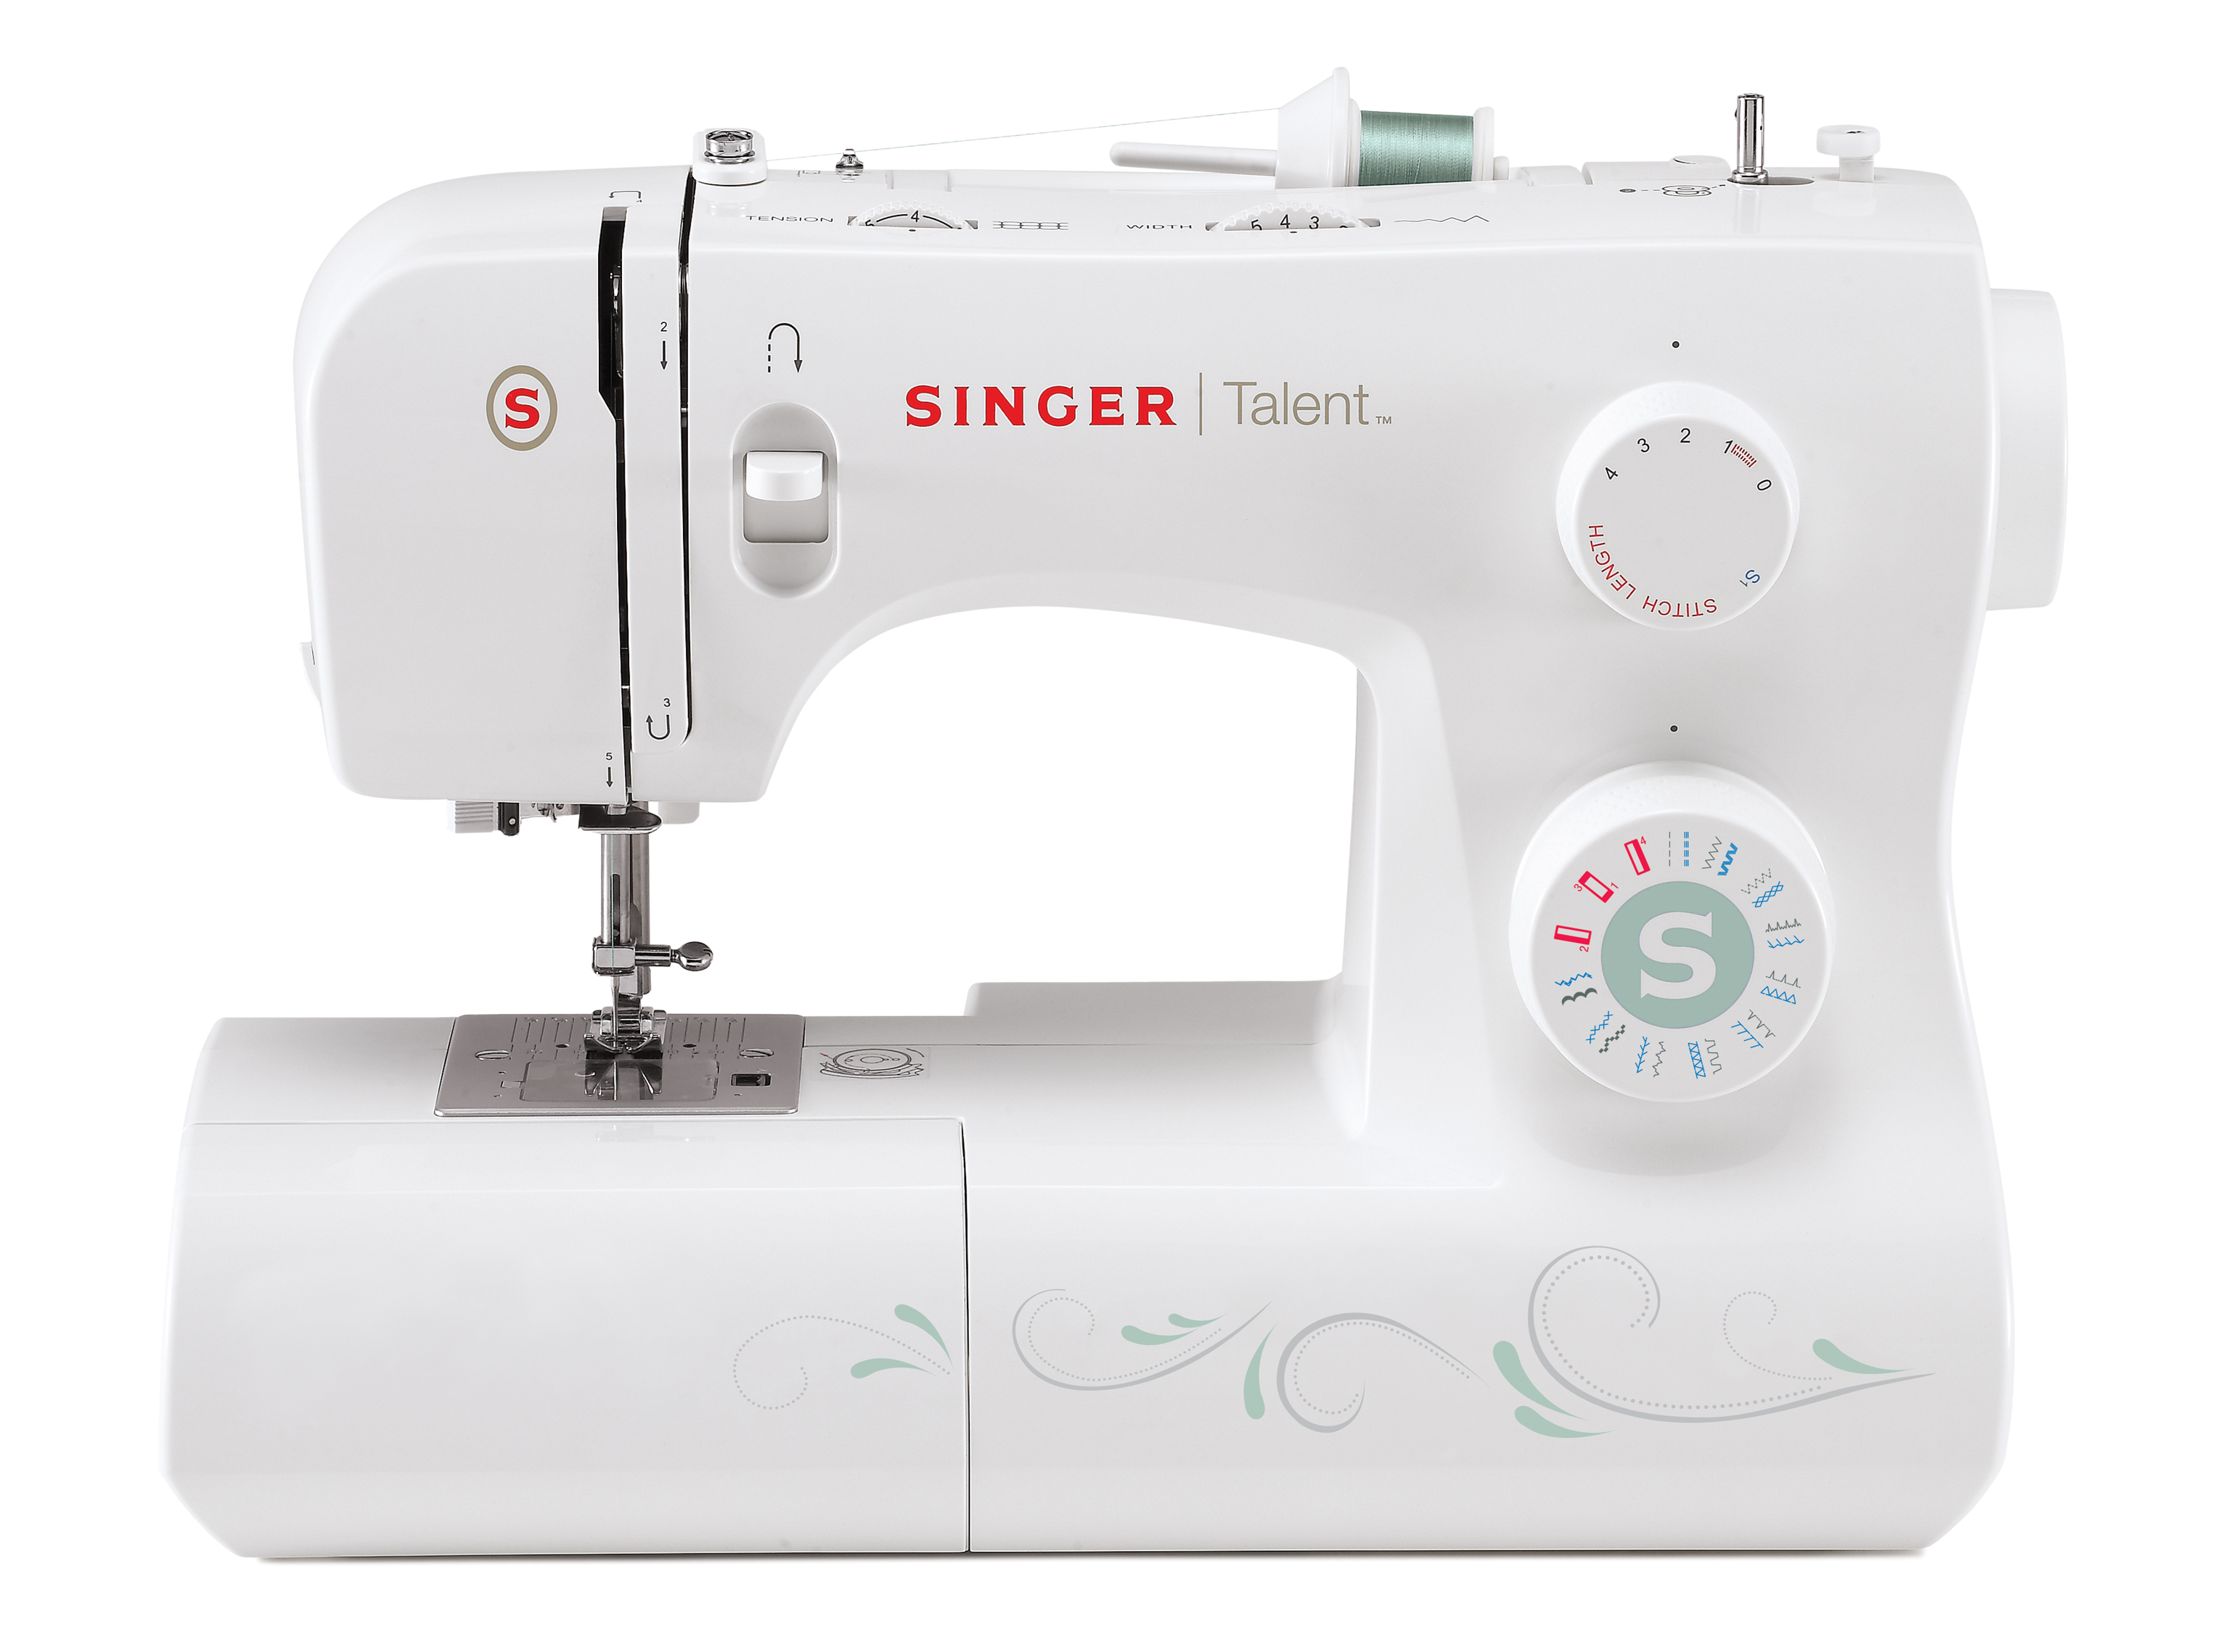 Singer talent 3321 sewing machine reviews sew magazine